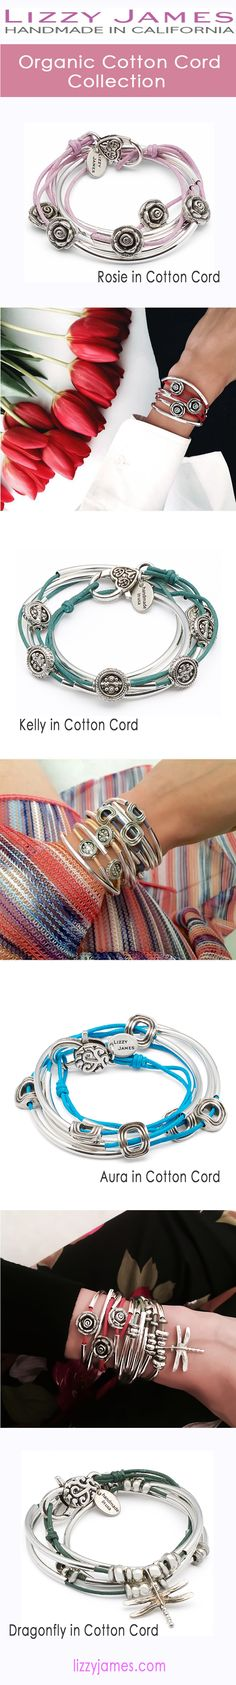 Lizzy James Jewelry presents the NEW organic cotton cord collection of wrap bracelets, that can also be worn as necklaces.  Designed with colorful organic braided cotton cord.  Handmade in the USA. #LizzyJamesInc